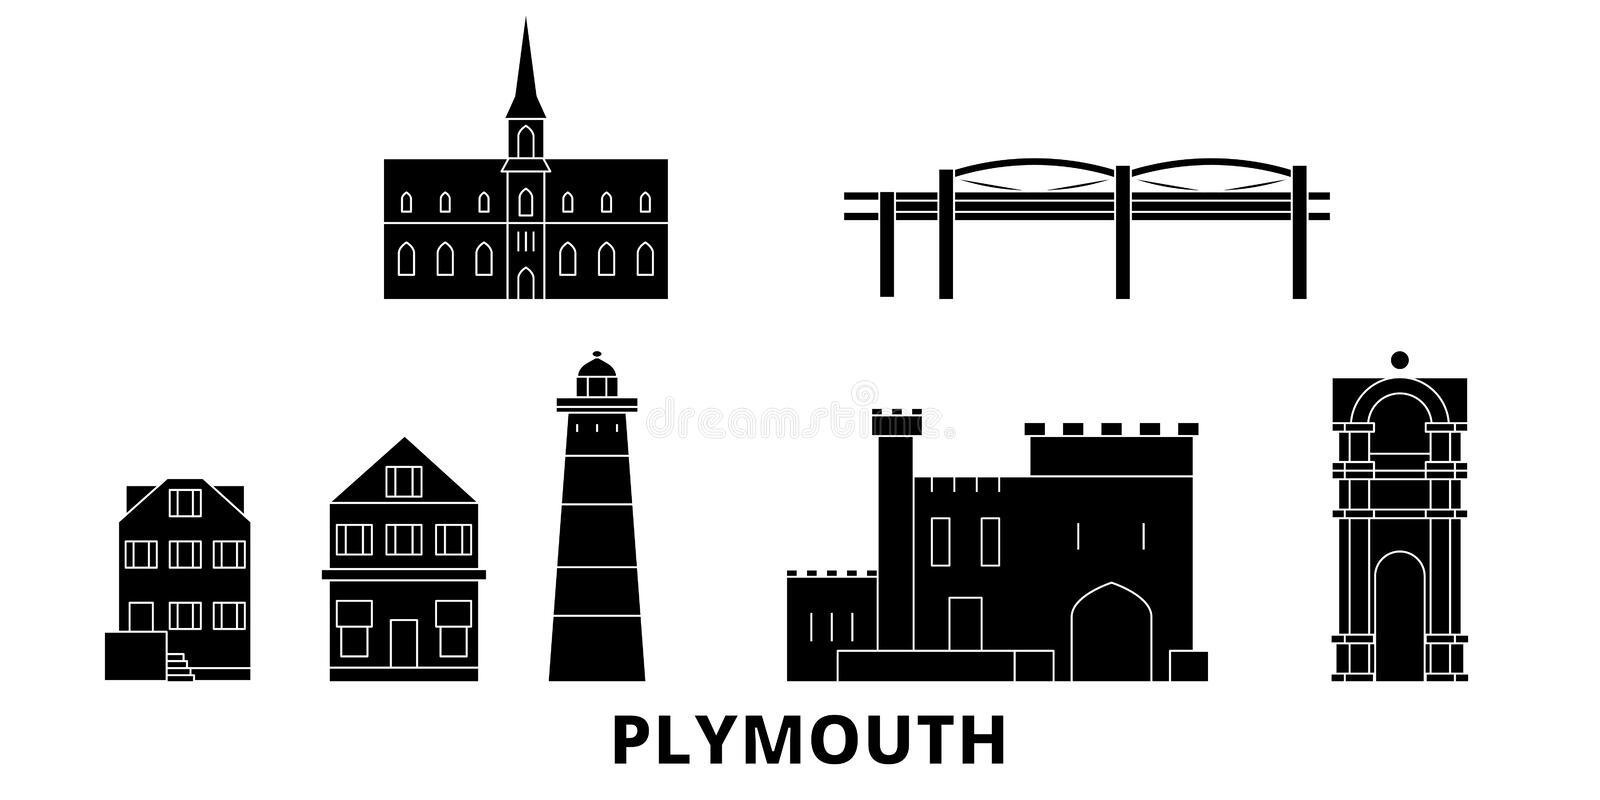 Förenade kungariket uppsättning för Plymouth plan lopphorisont Förenade kungariket illustration för vektor för Plymouth svartstad vektor illustrationer